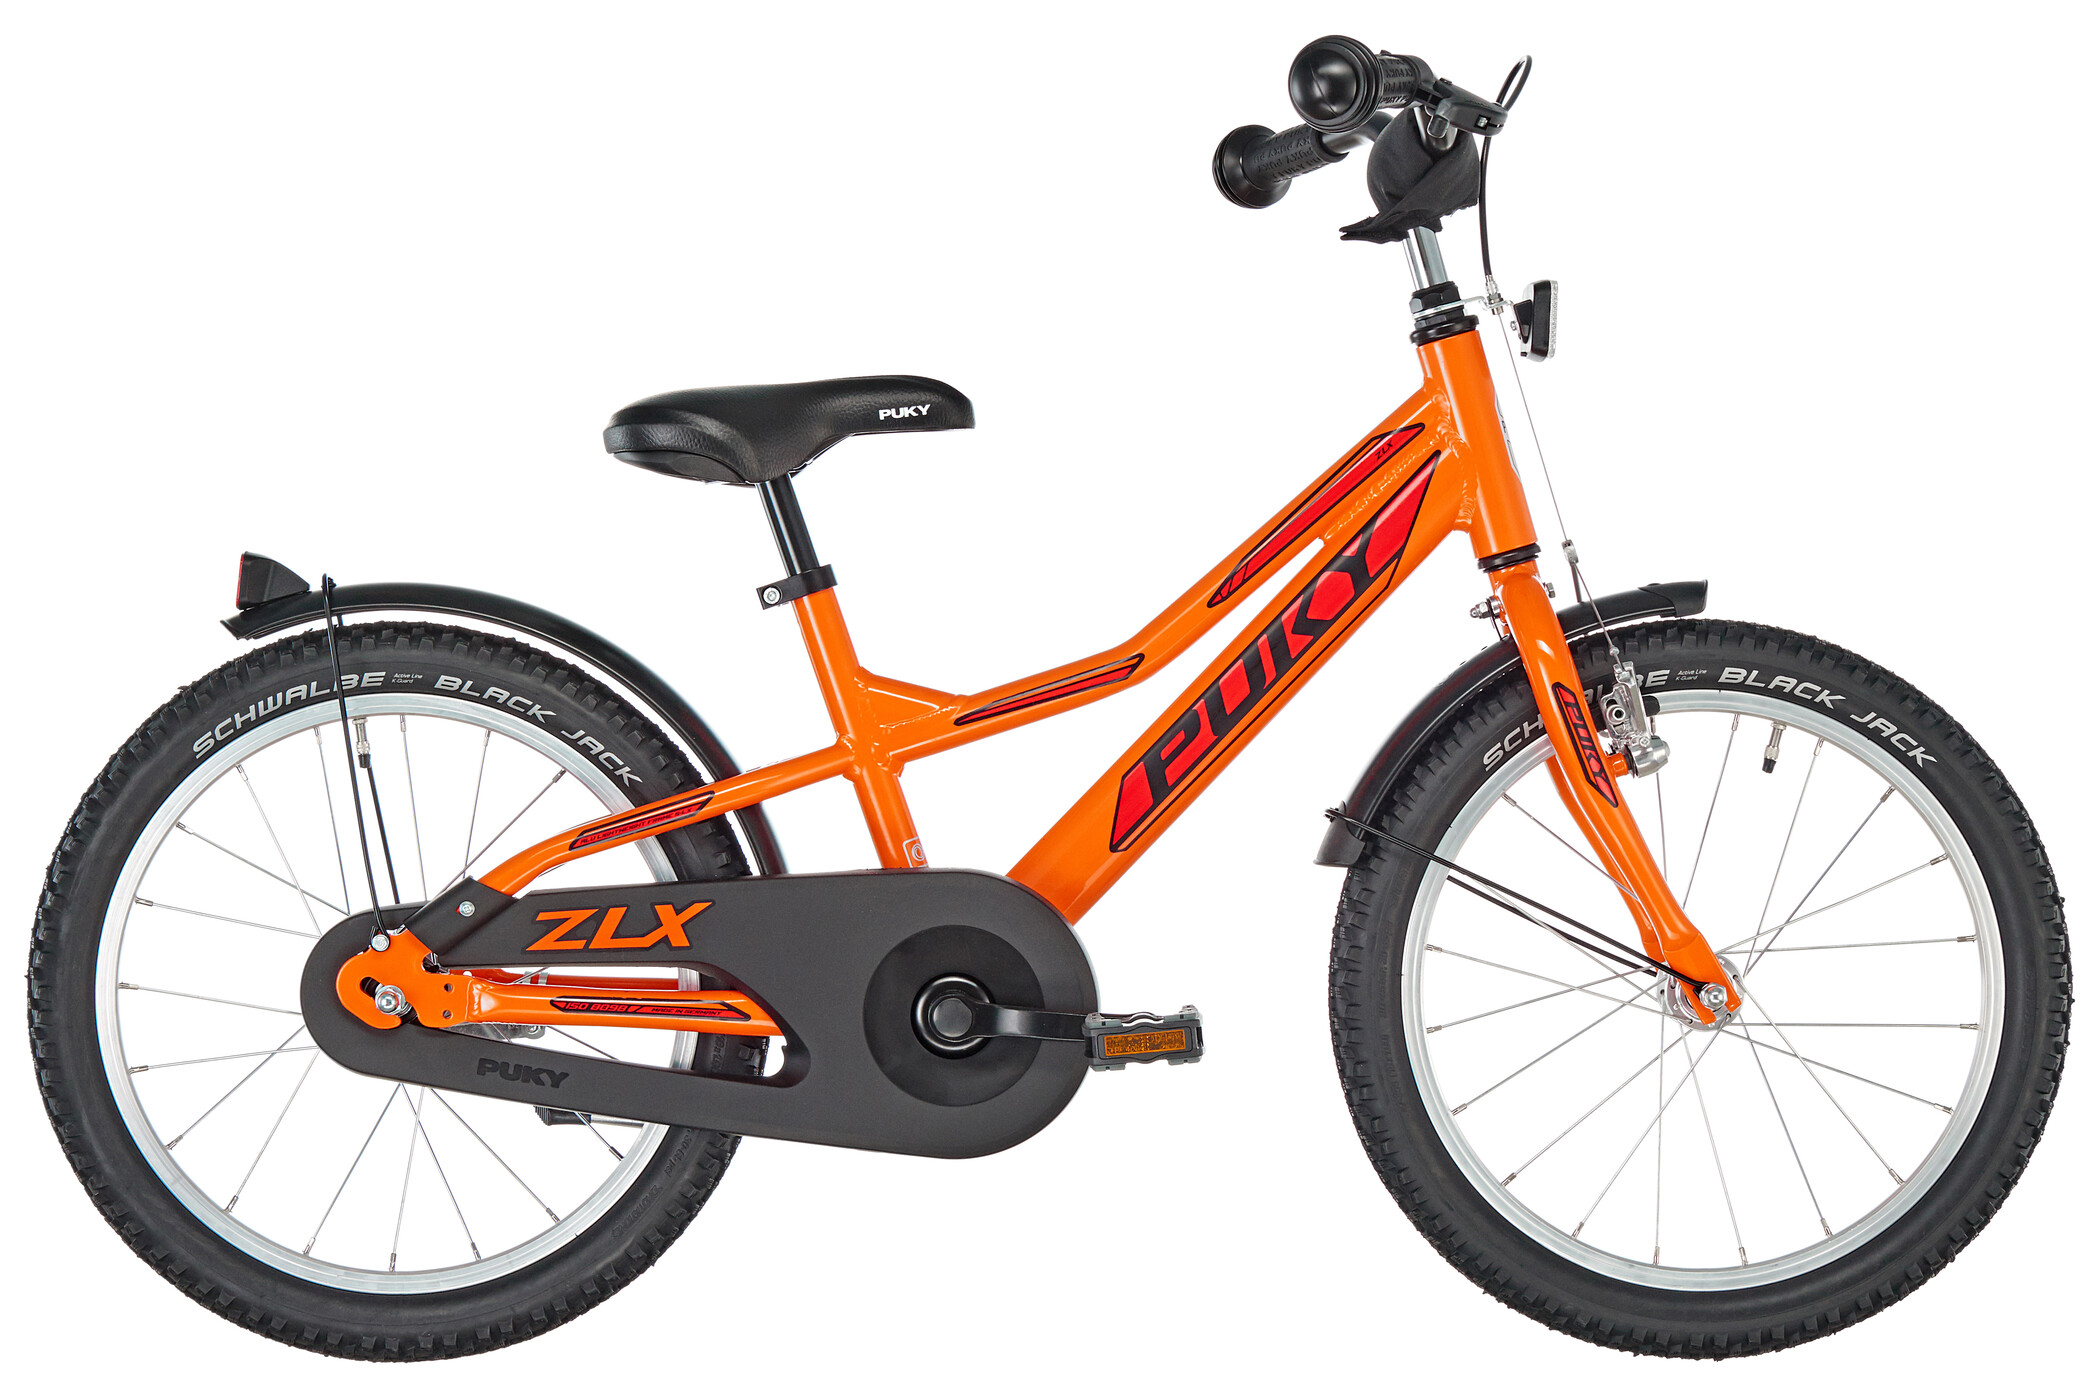 Puky ZLX 18-1 aluminium Drenge, racing orange (2020) | City-cykler